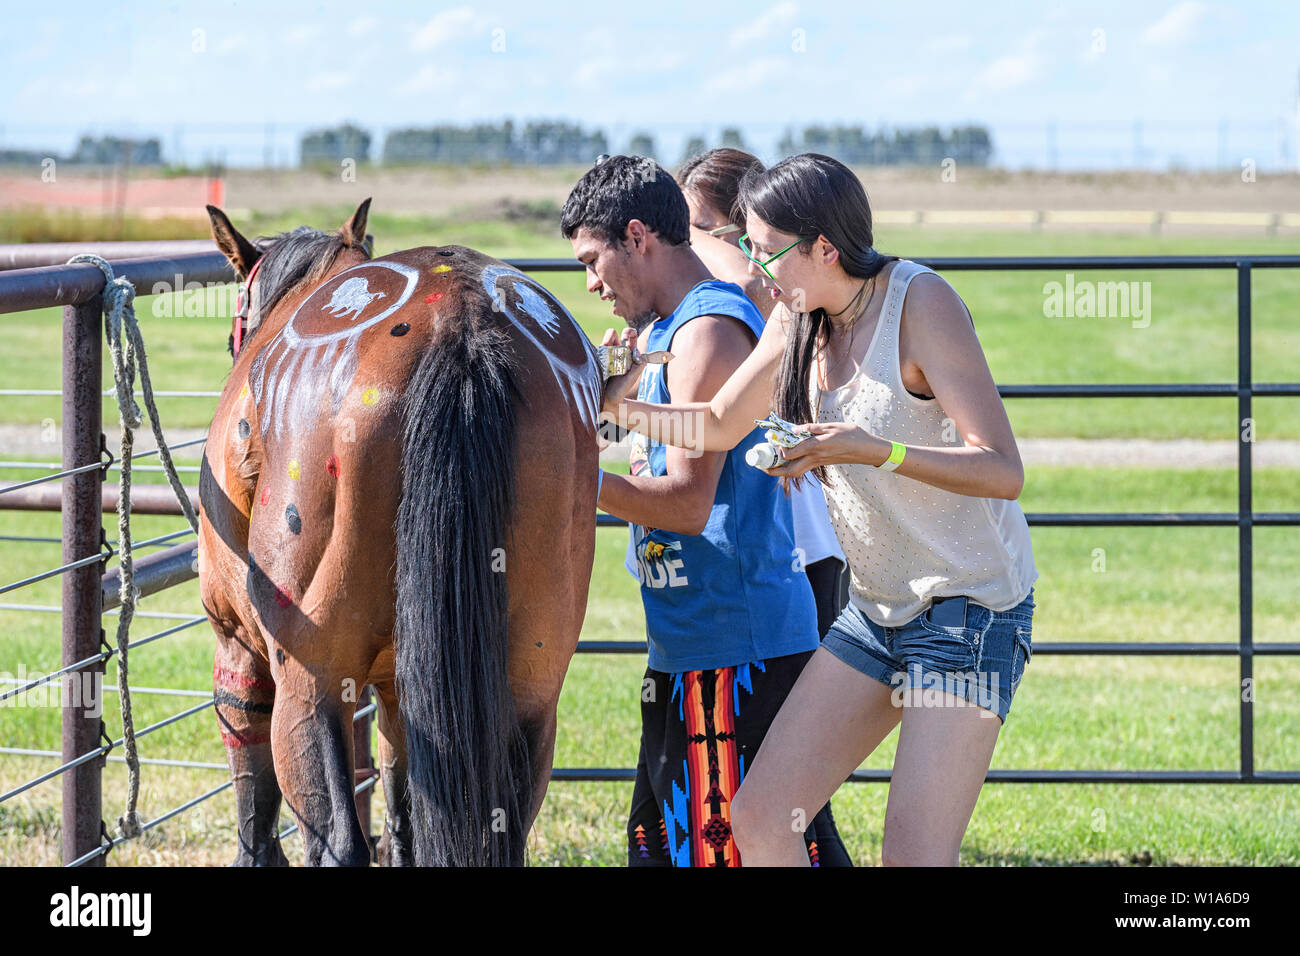 Indian Horses Painting High Resolution Stock Photography And Images Alamy